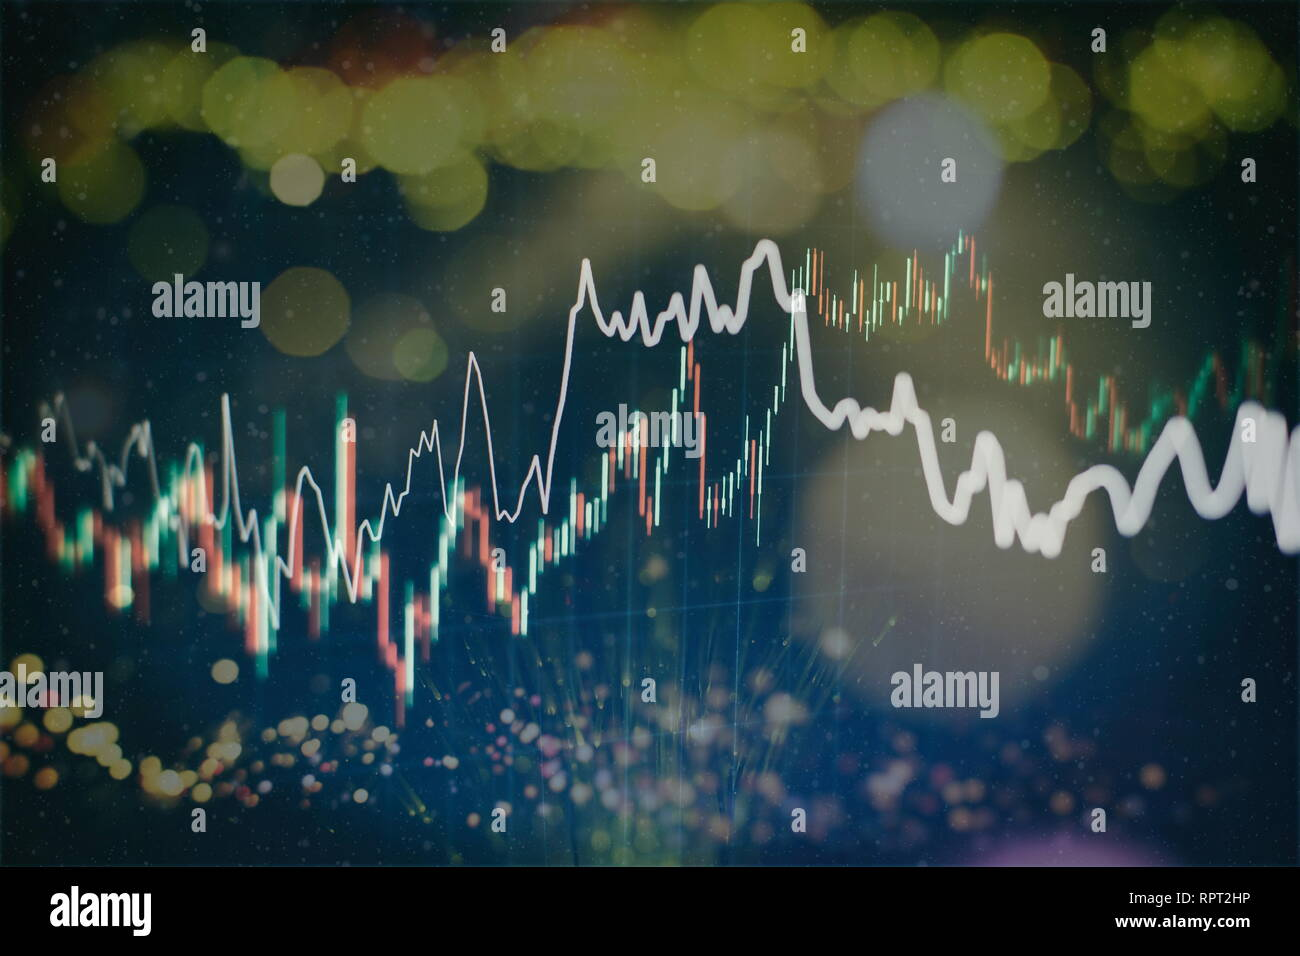 Abstract glowing forex chart interface wallpaper. Investment, trade, stock, finance and analysis concept. Stock Photo